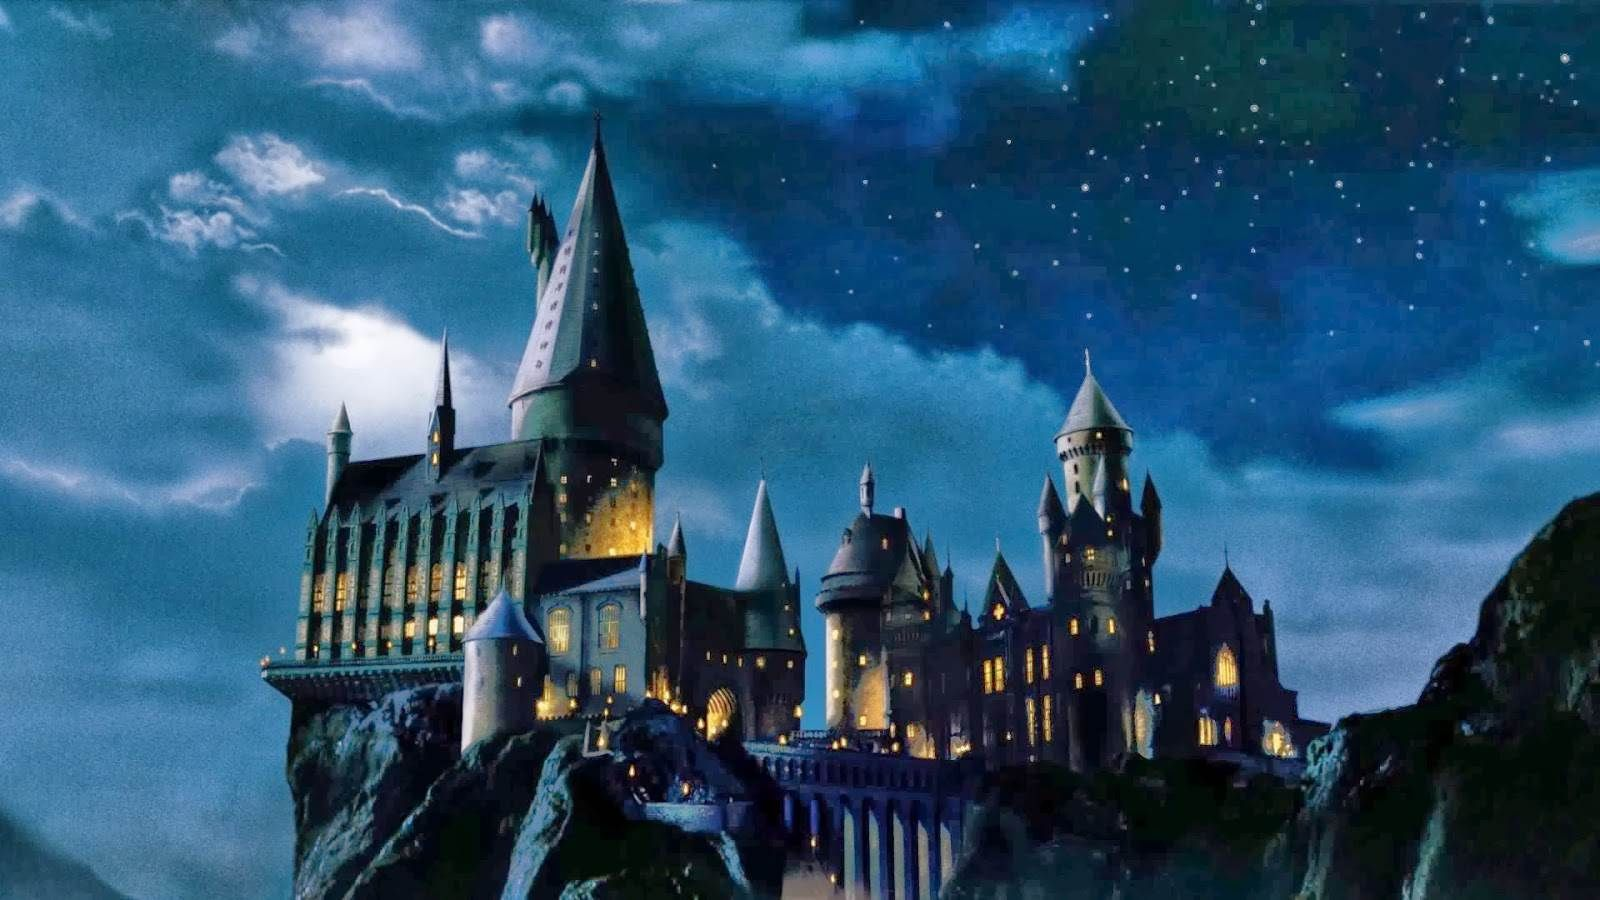 Christmas At Hogwarts Harry Potter Wallpapers Top Free Christmas At Hogwarts Harry Potter Backgrounds Wallpaperaccess